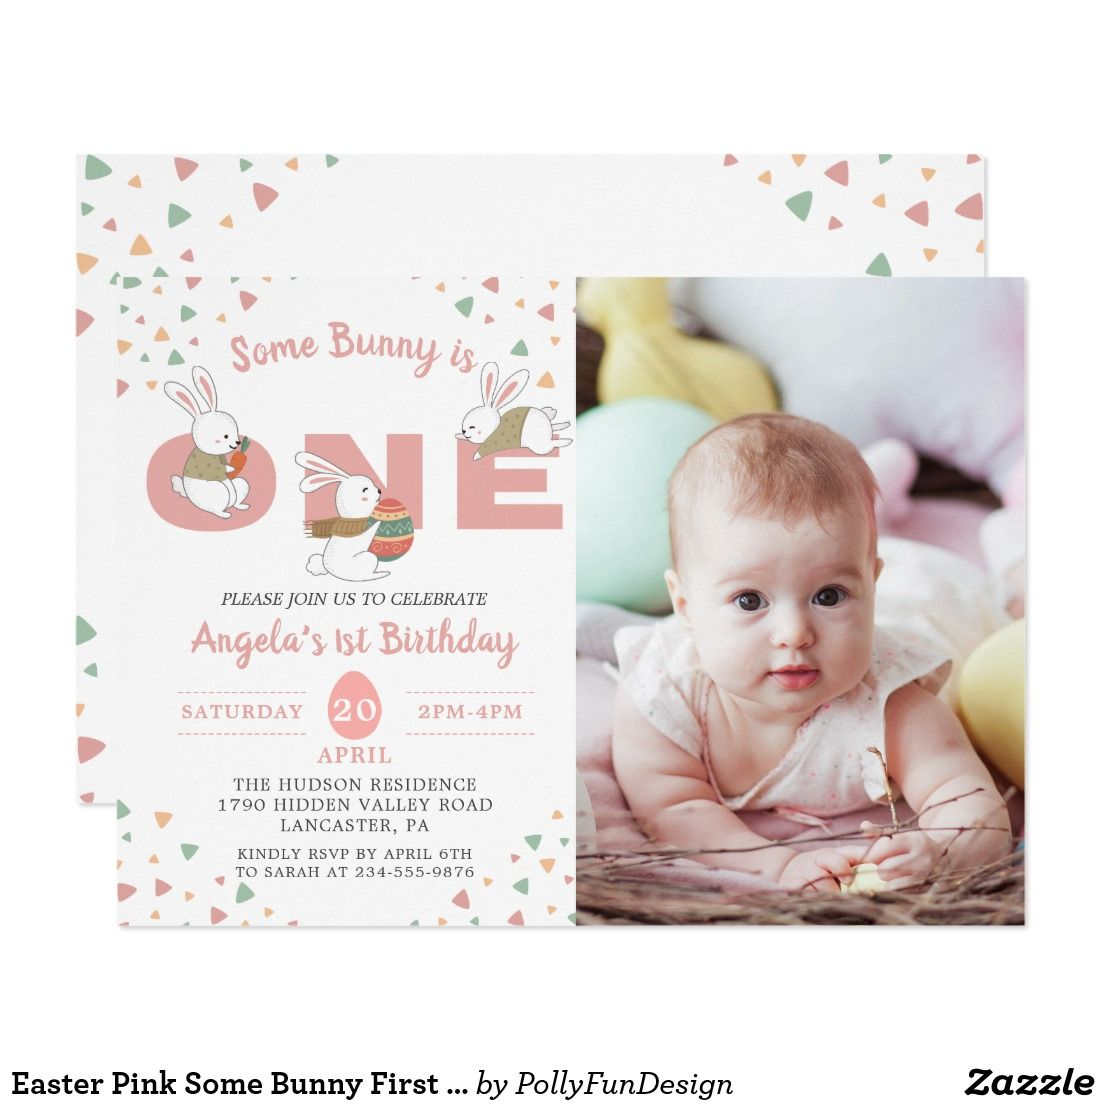 Easter Pink Some Bunny First Birthday Photo Invitation